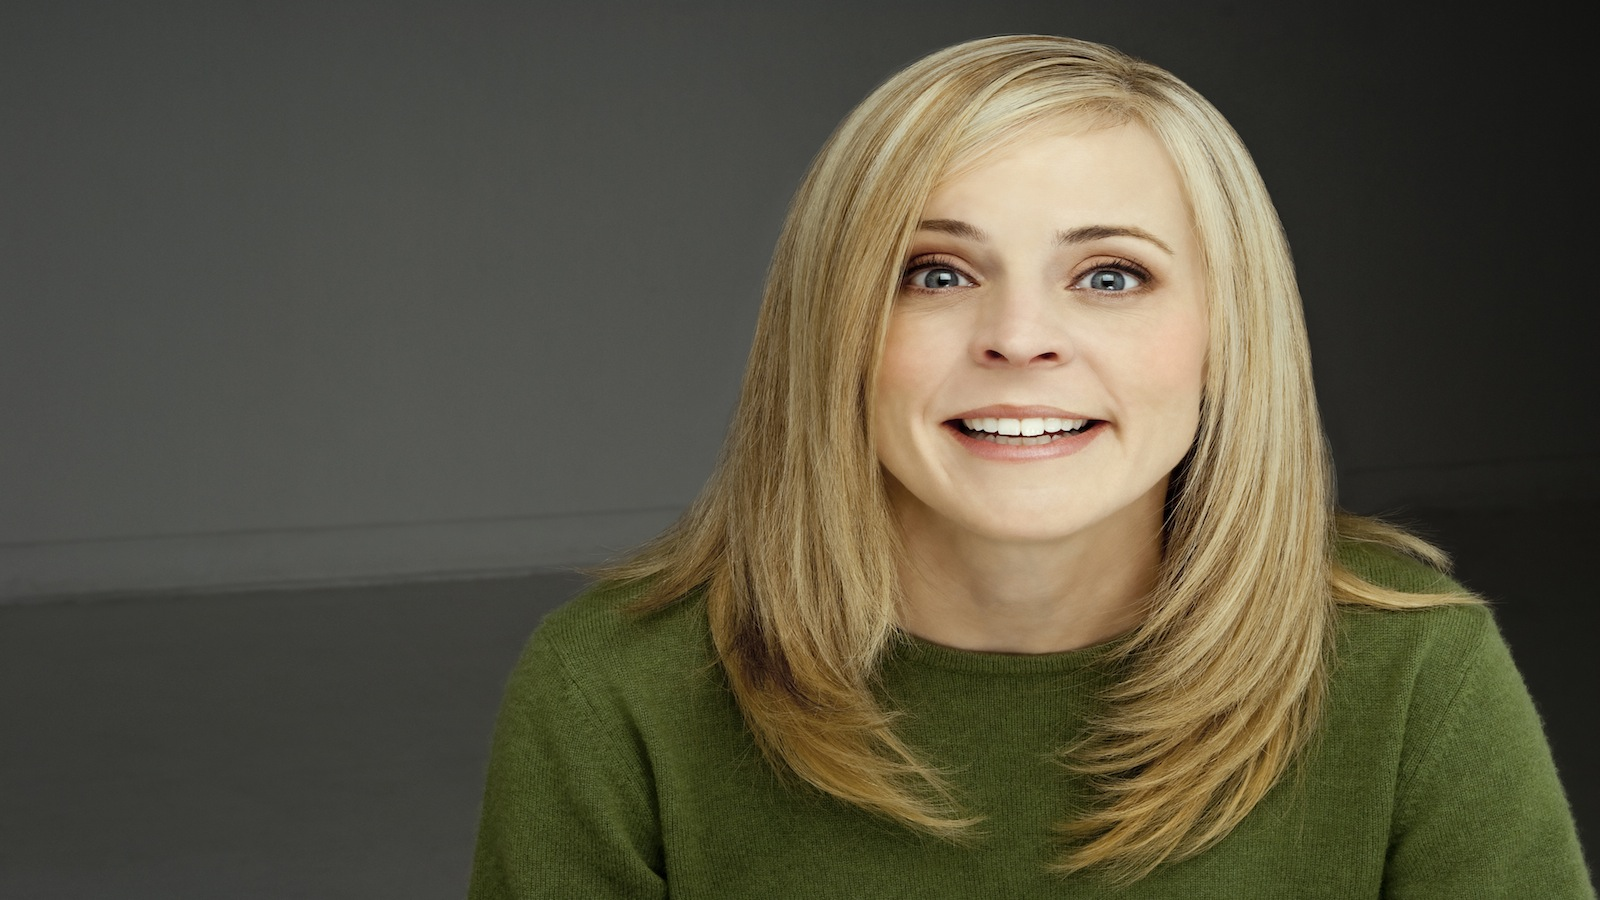 Maria Bamford Net Worth